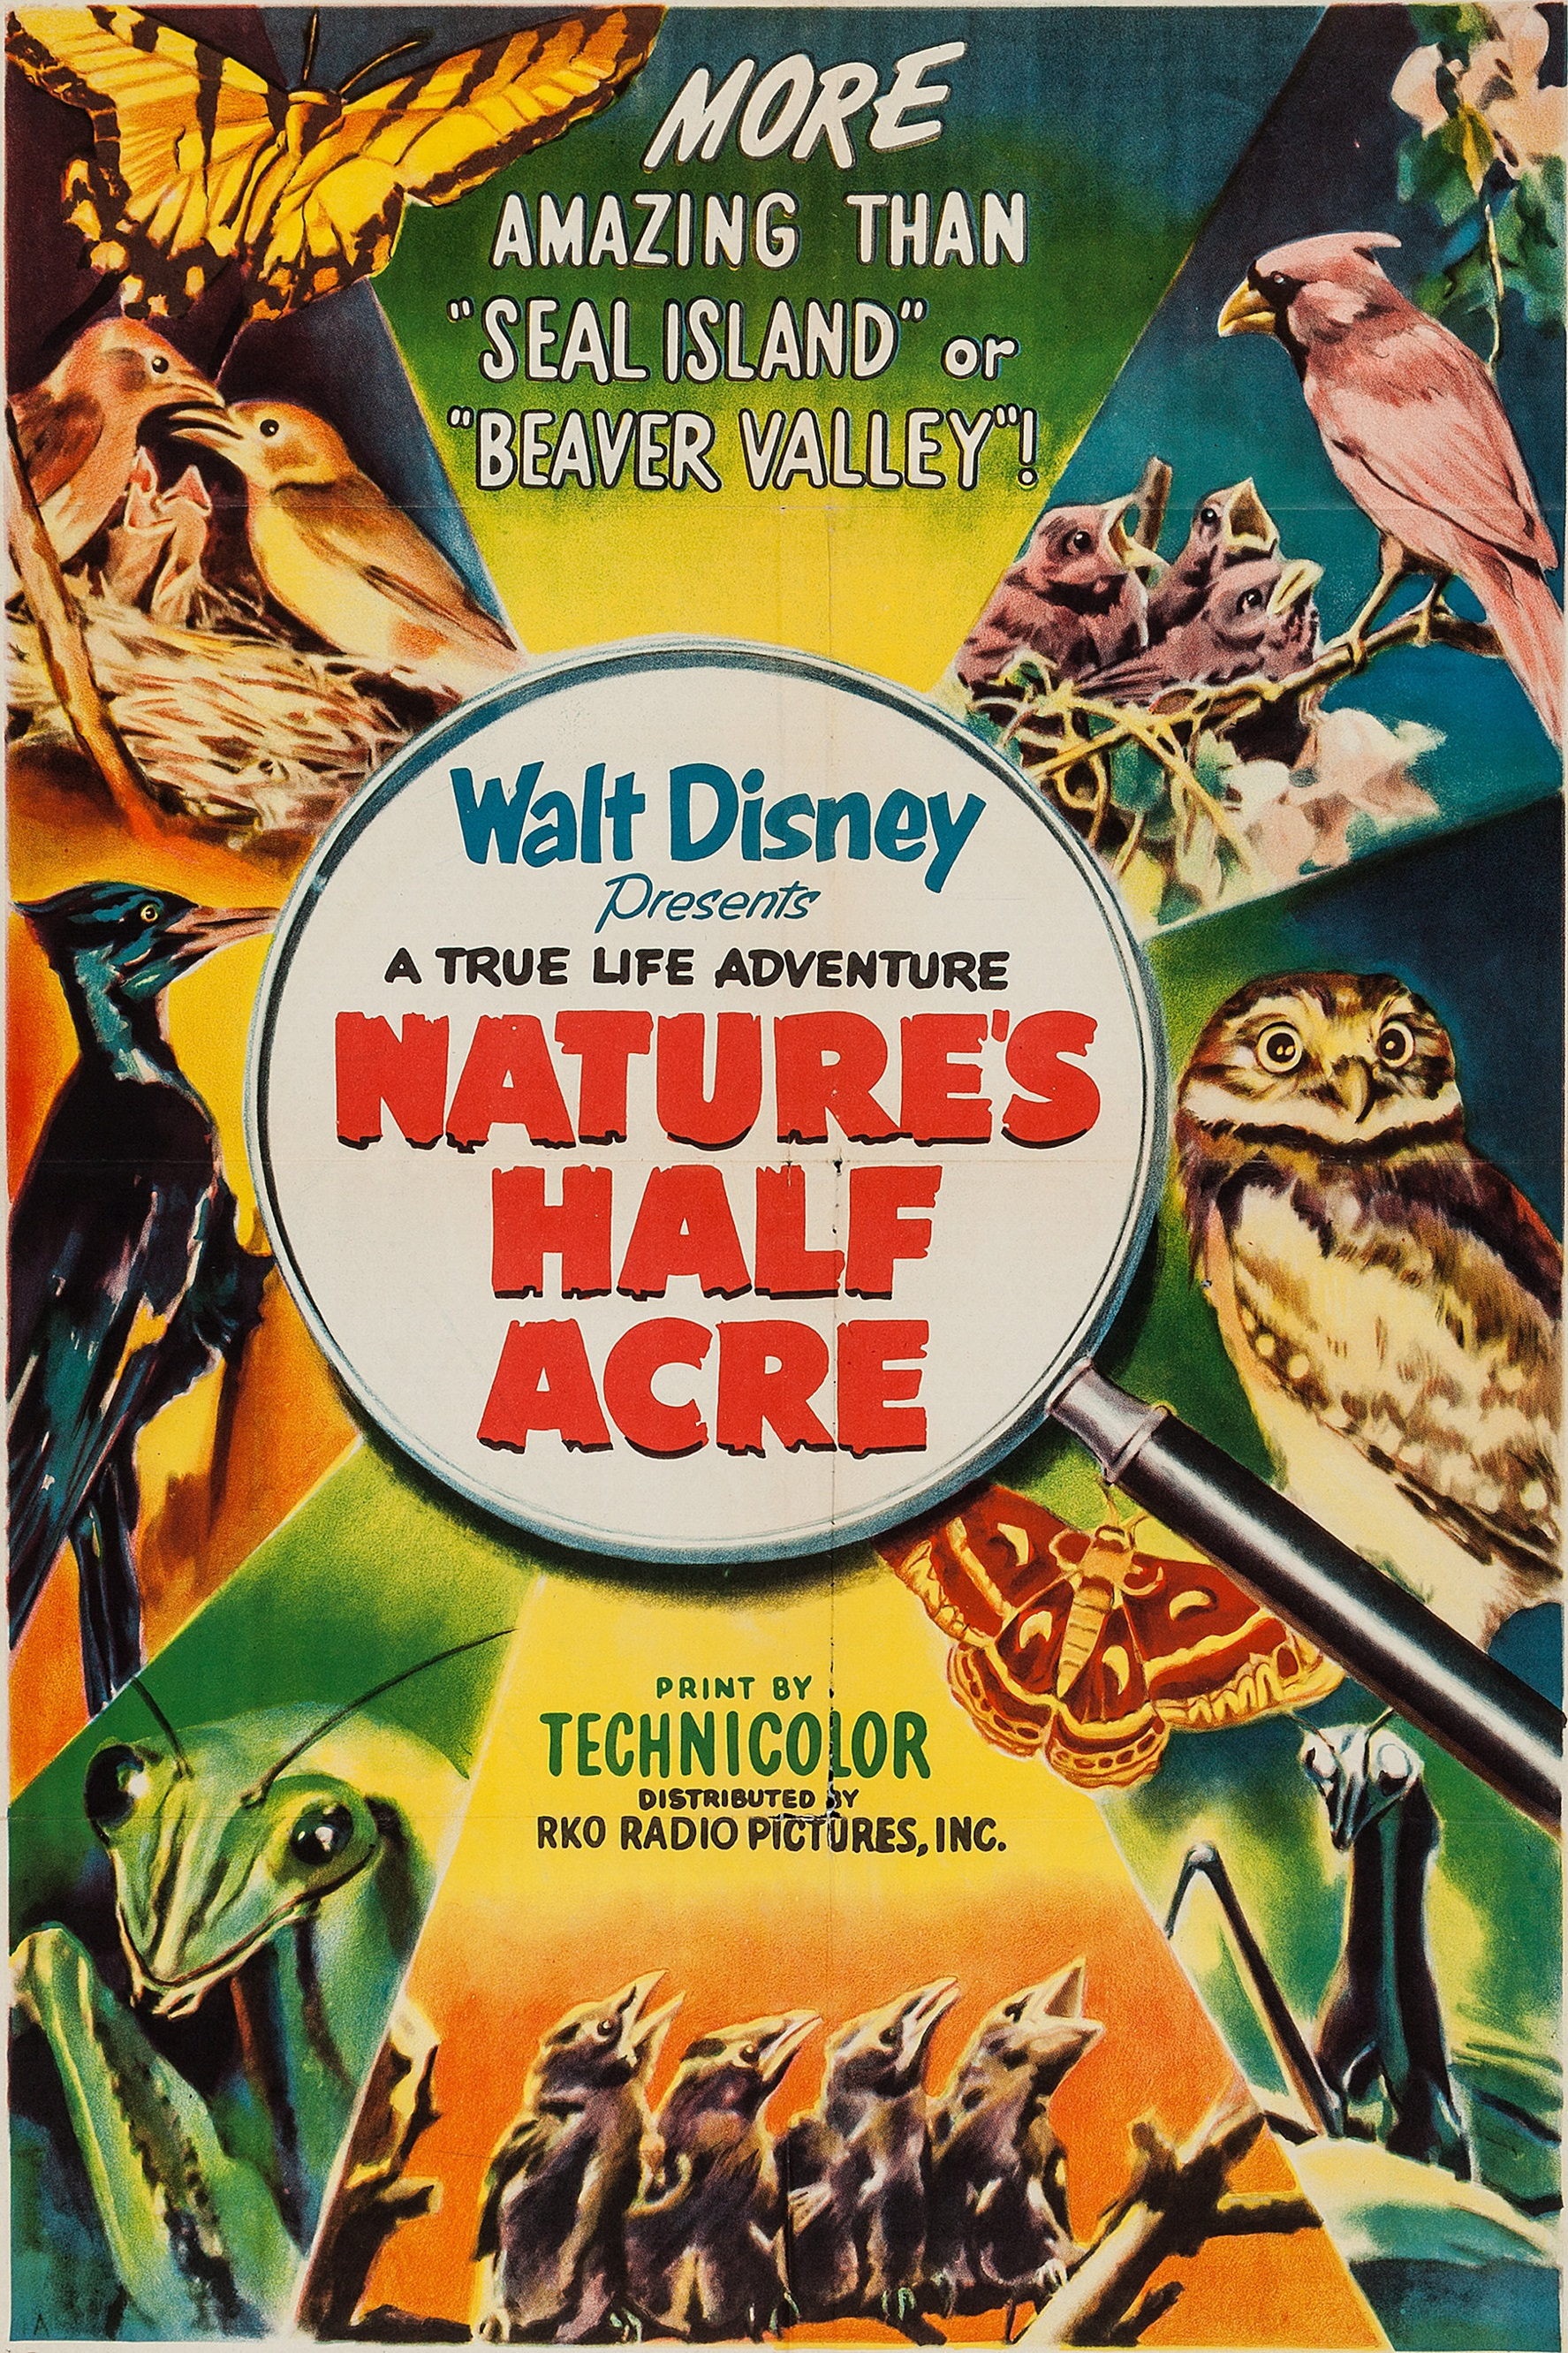 File:Natures half acre.jpg